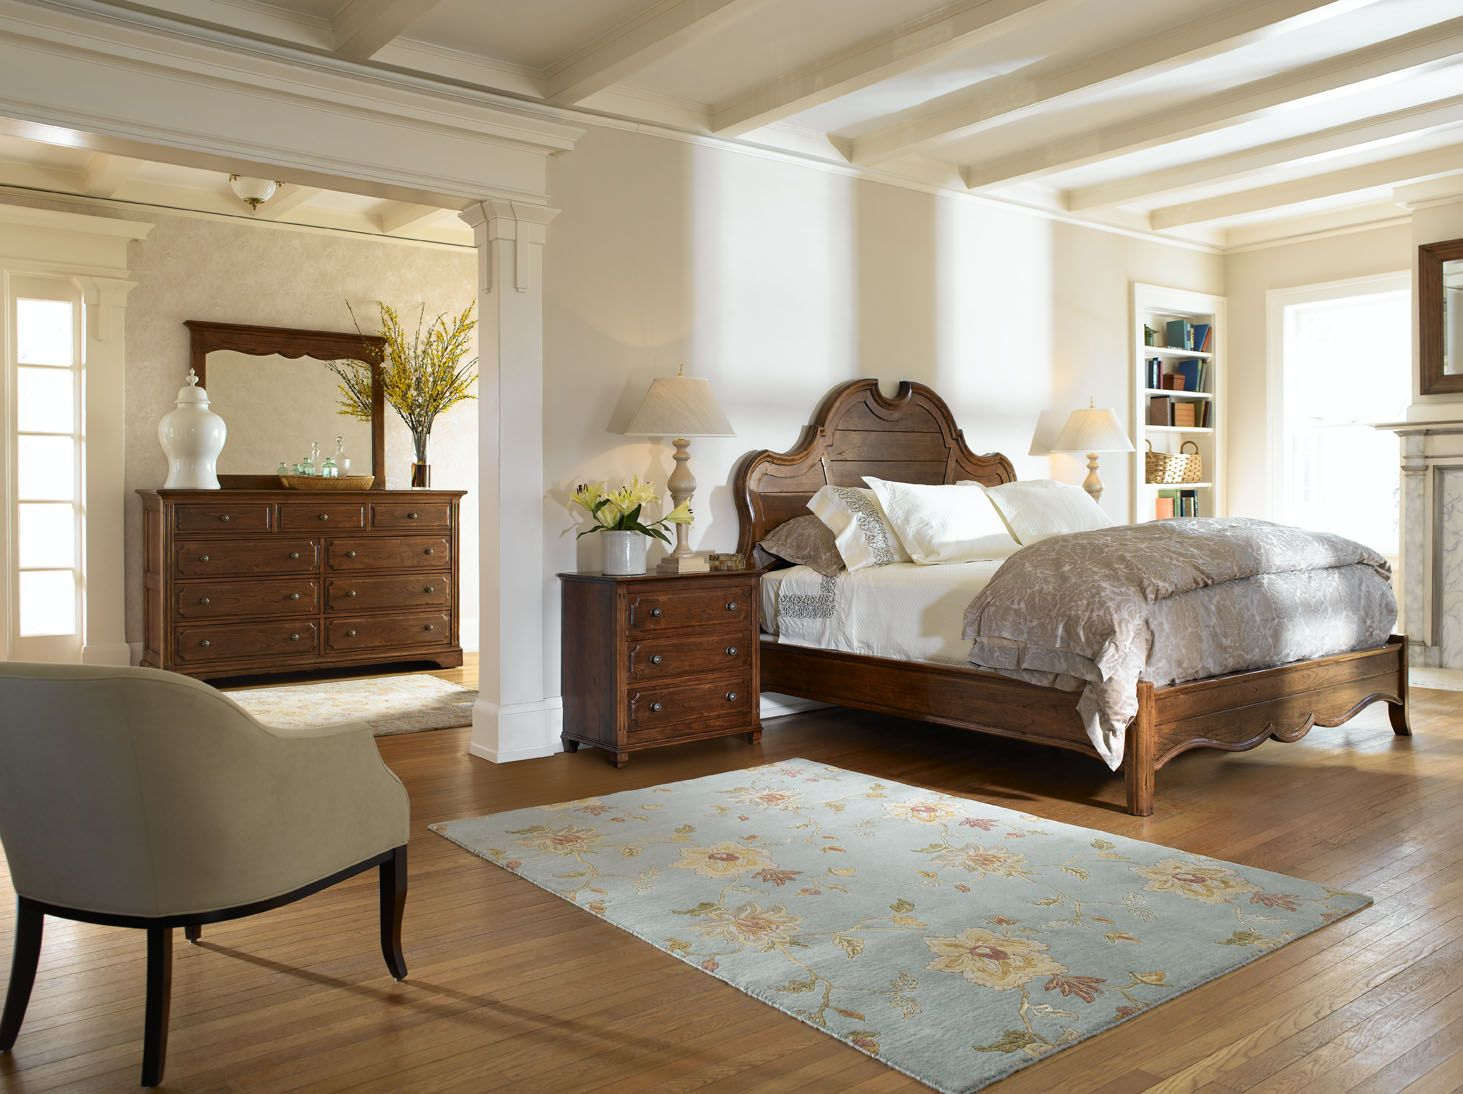 Great Stickleyu0027s Marietta Baroque Bed | Get The Latest Styles From Stickley  Furniture At The Heritage House